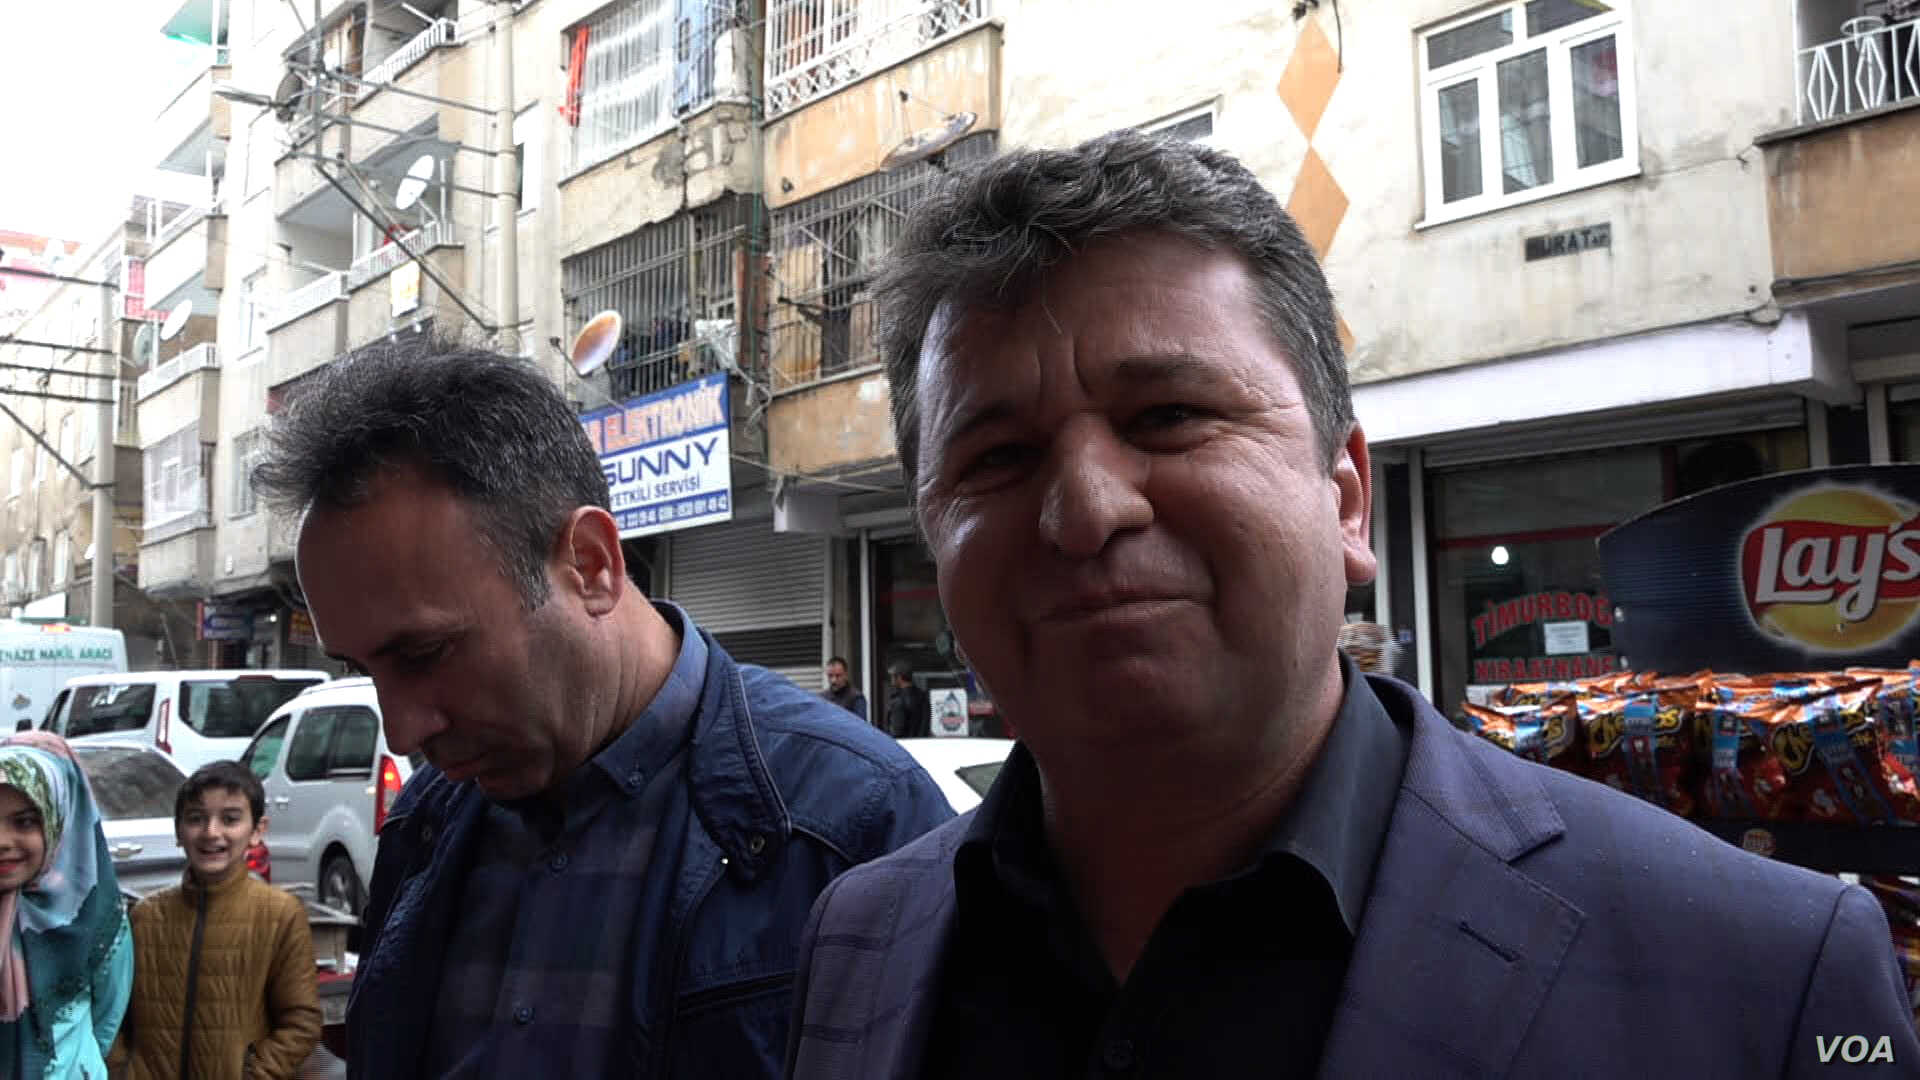 AKP activist Abdurrahim Dogan, campaigning in Baglar, says he believes the people are ready for change.